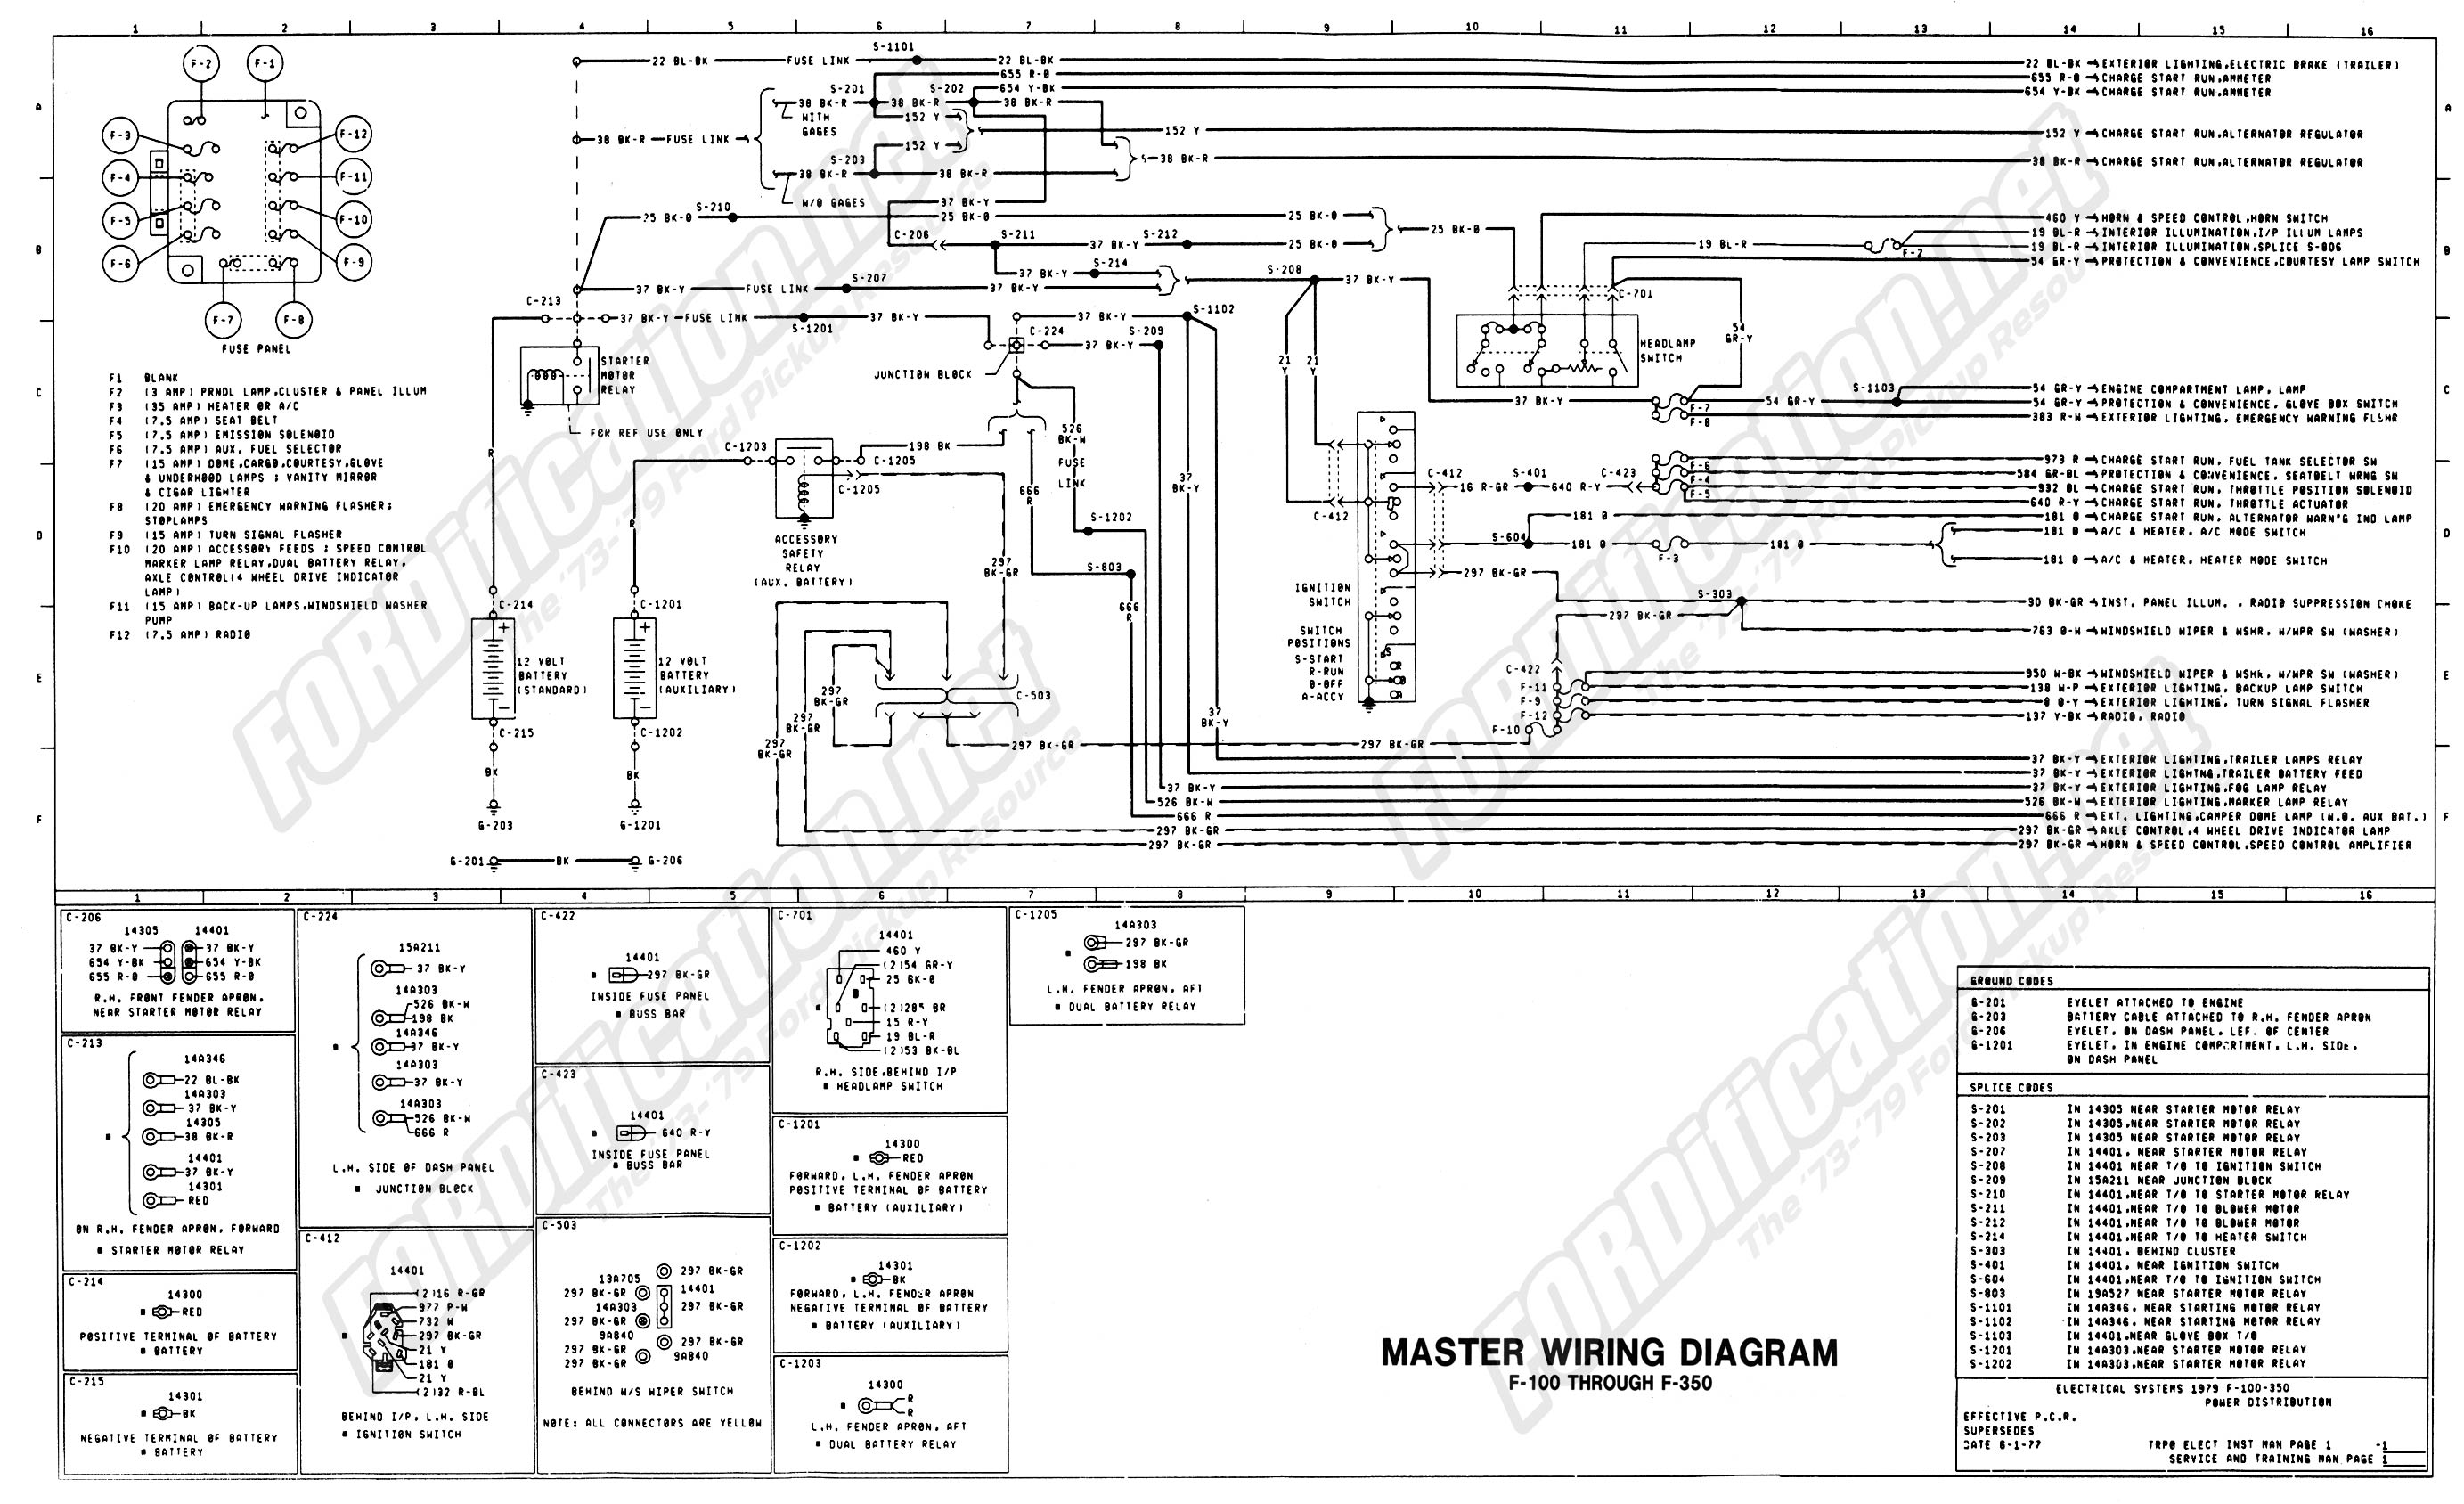 wiring_79master_1of9 1973 1979 ford truck wiring diagrams & schematics fordification net 1979 ford bronco fuse box diagram at mifinder.co